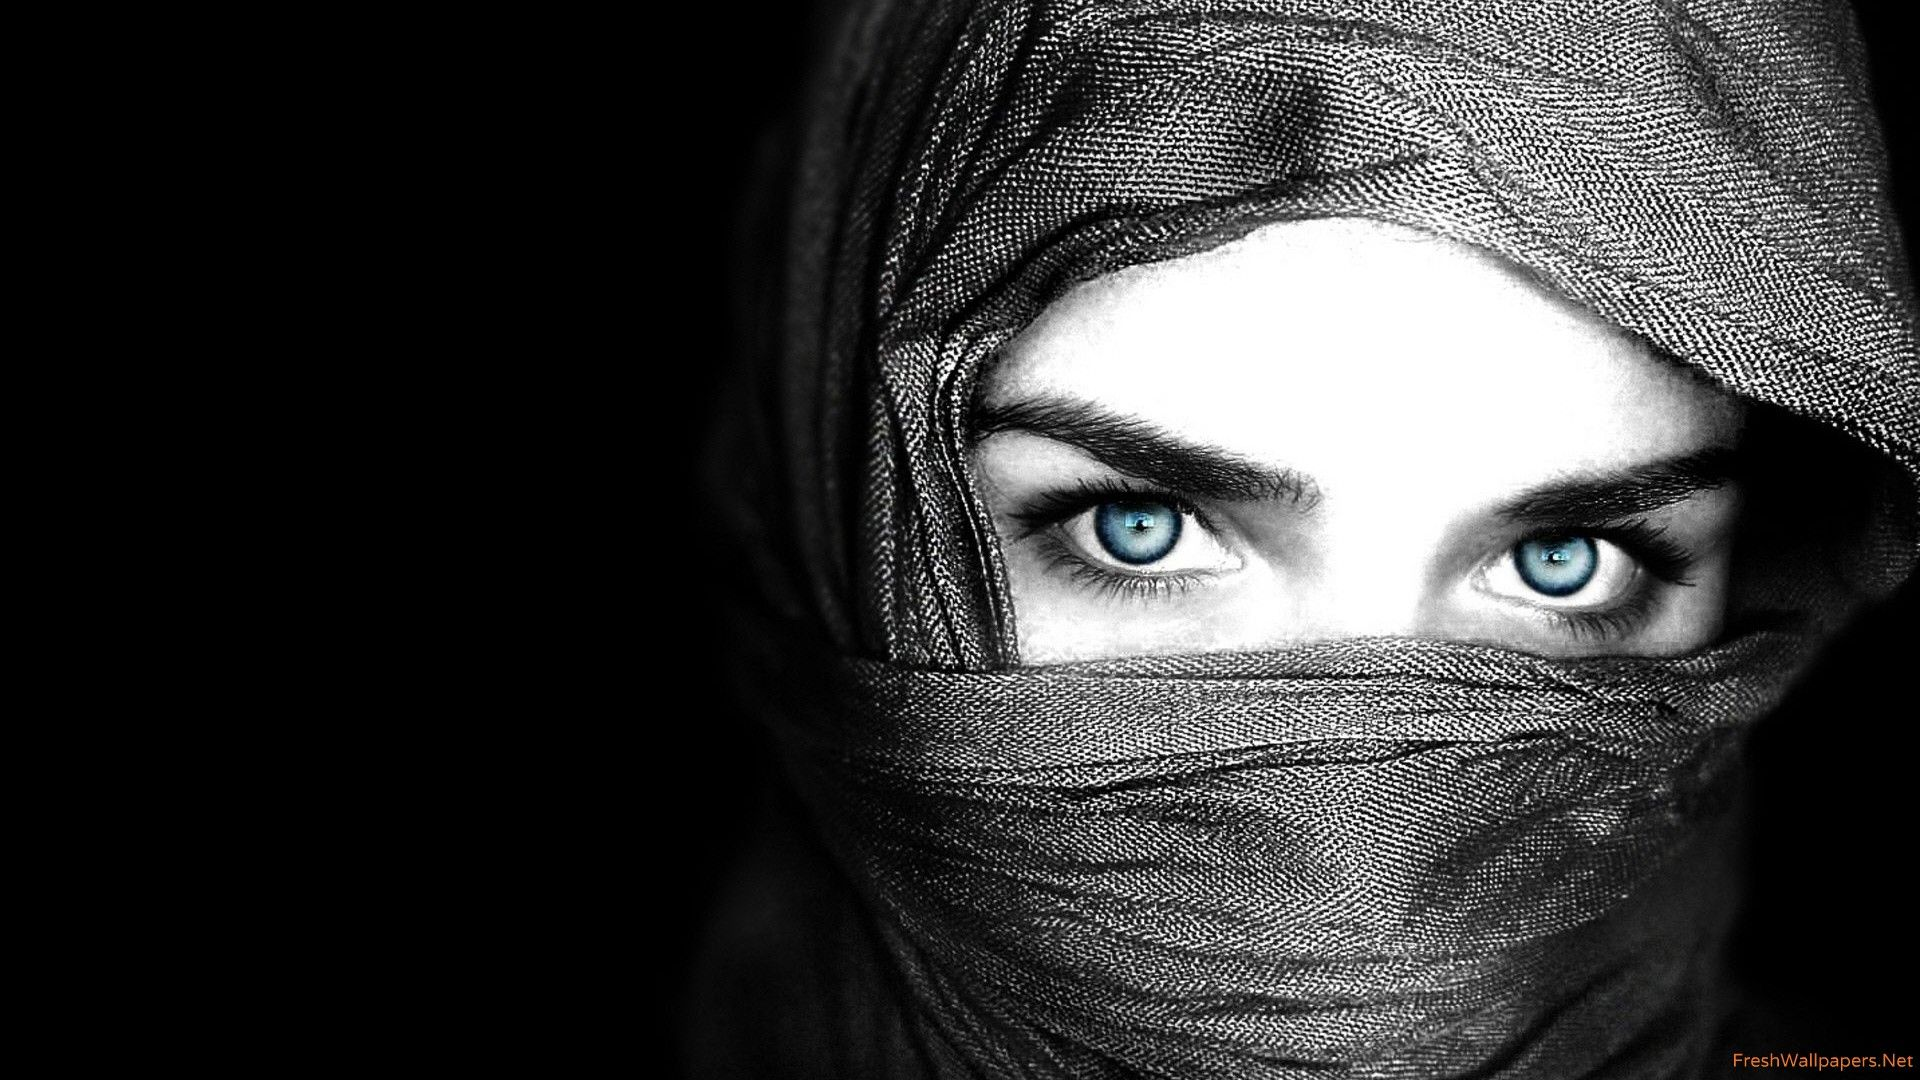 Image for Arab Women Blue Eyes Covered Face Widescreen Hd